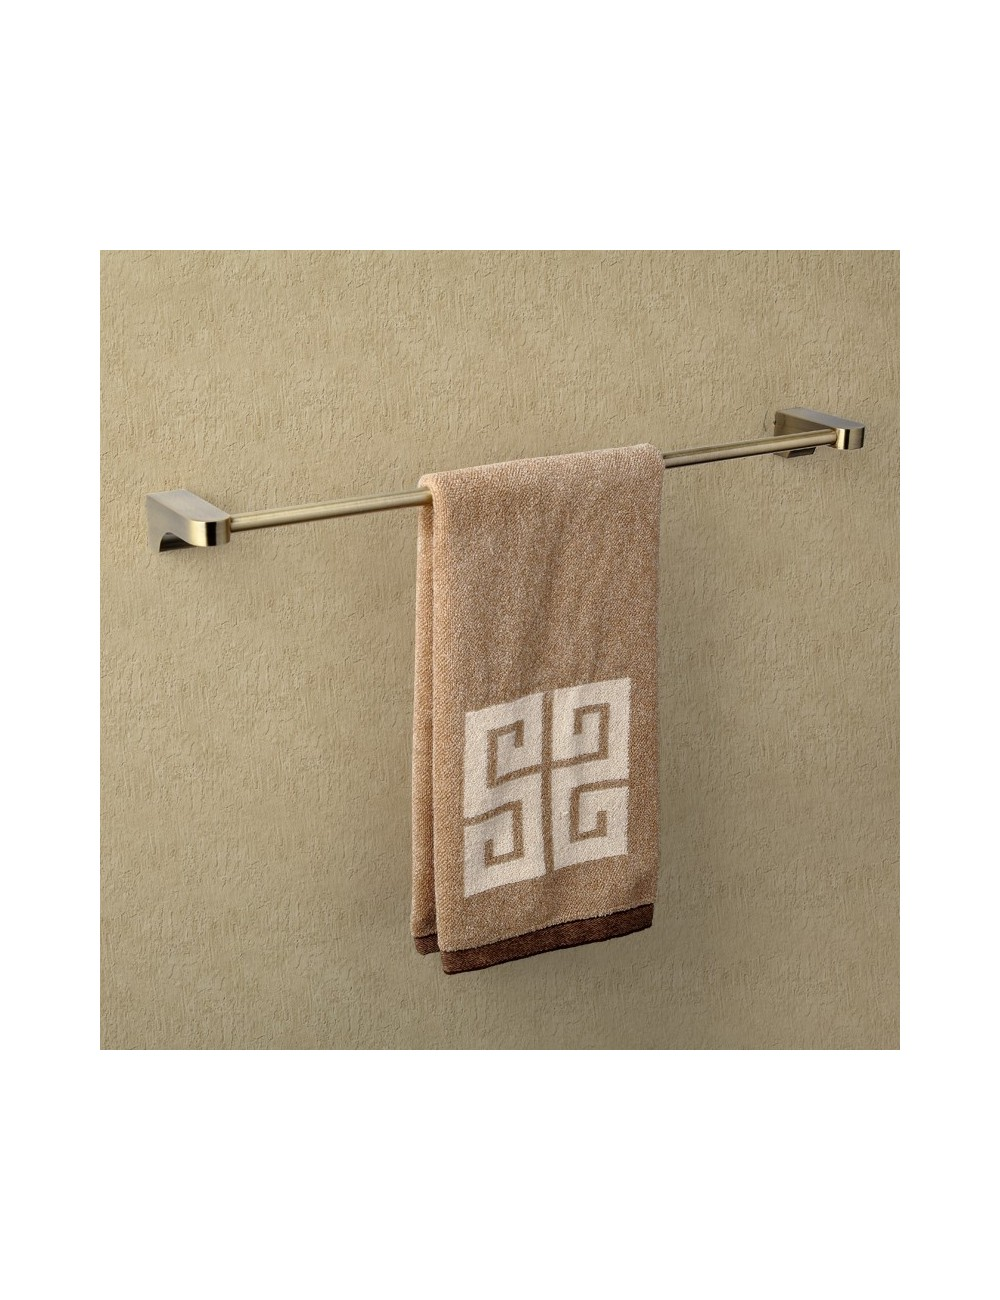 Collection Zeus 2, porte serviette Bronze